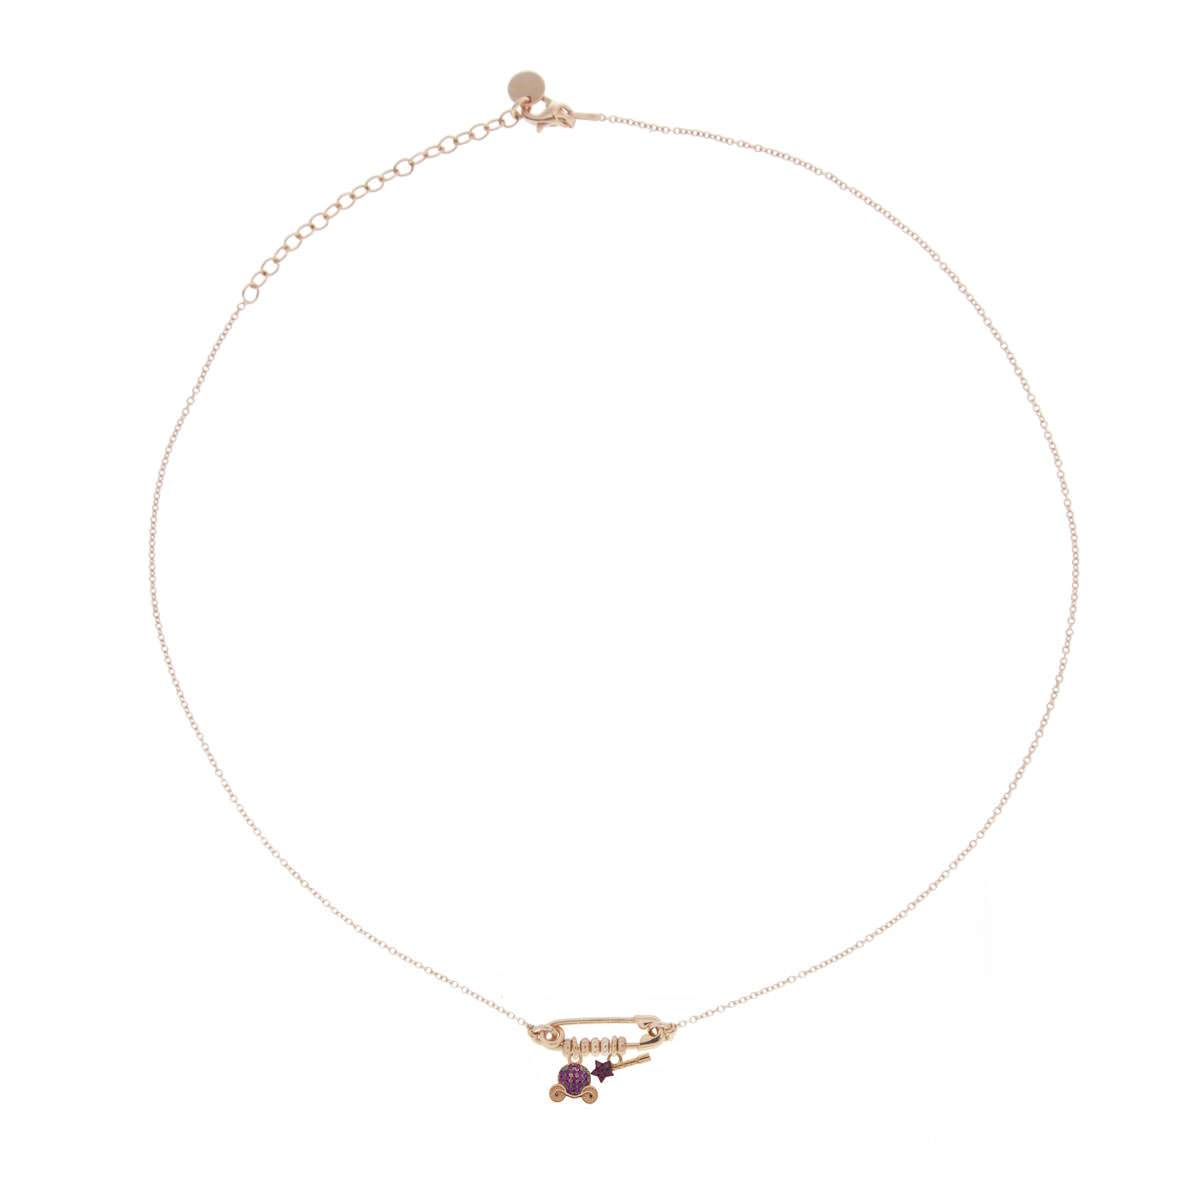 Chokers - Double Pendant and Brooch Choker - Carriage/Wand - 1 | Rue des Mille